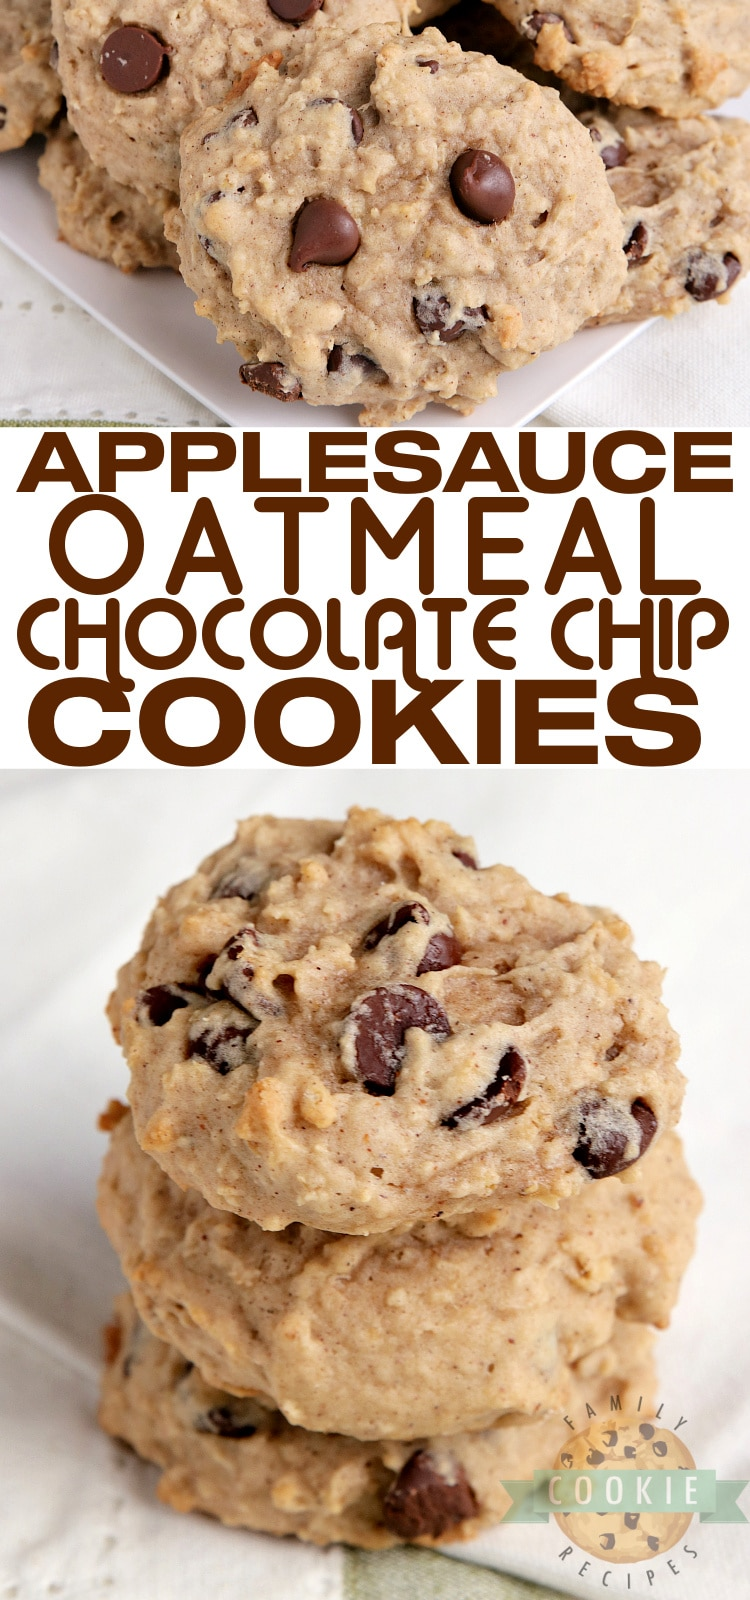 Applesauce Oatmeal Chocolate Chip Cookies are moist, soft and packed with flavor. Delicious applesauce cookies that are simple to make and are absolutely delicious too! via @familycookierecipes